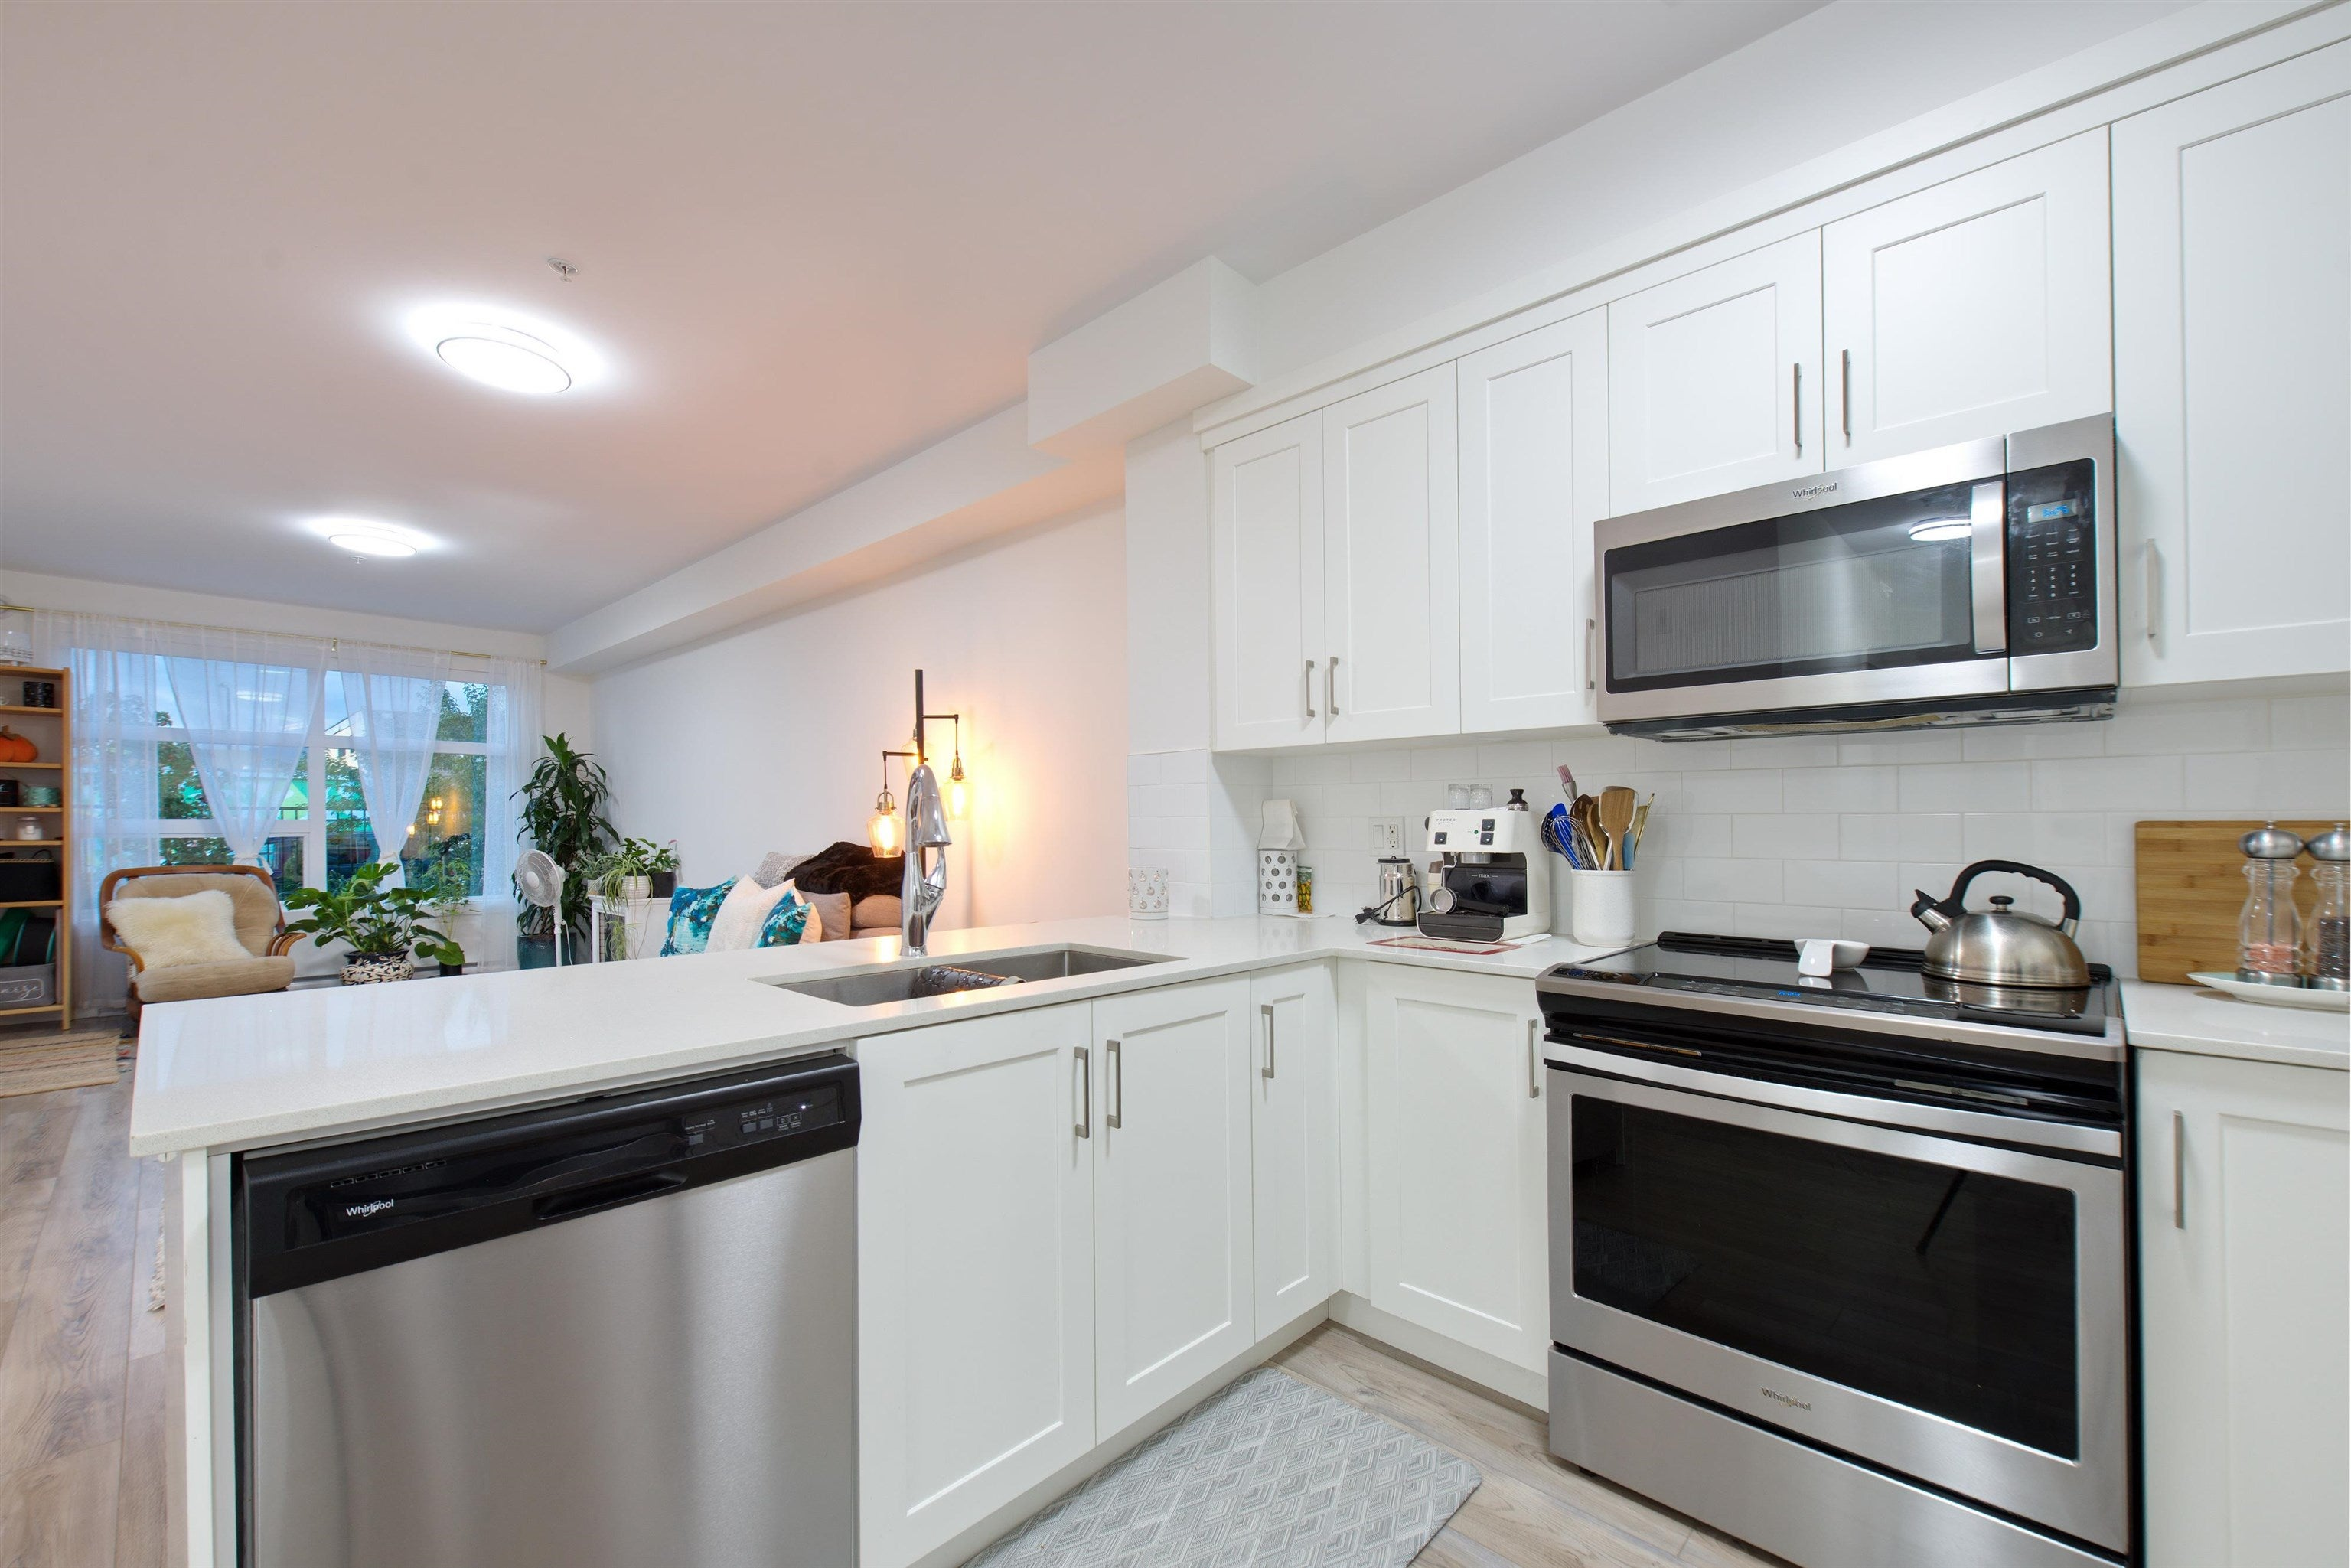 108 22577 ROYAL CRESCENT - East Central Apartment/Condo for sale, 2 Bedrooms (R2625662) - #11